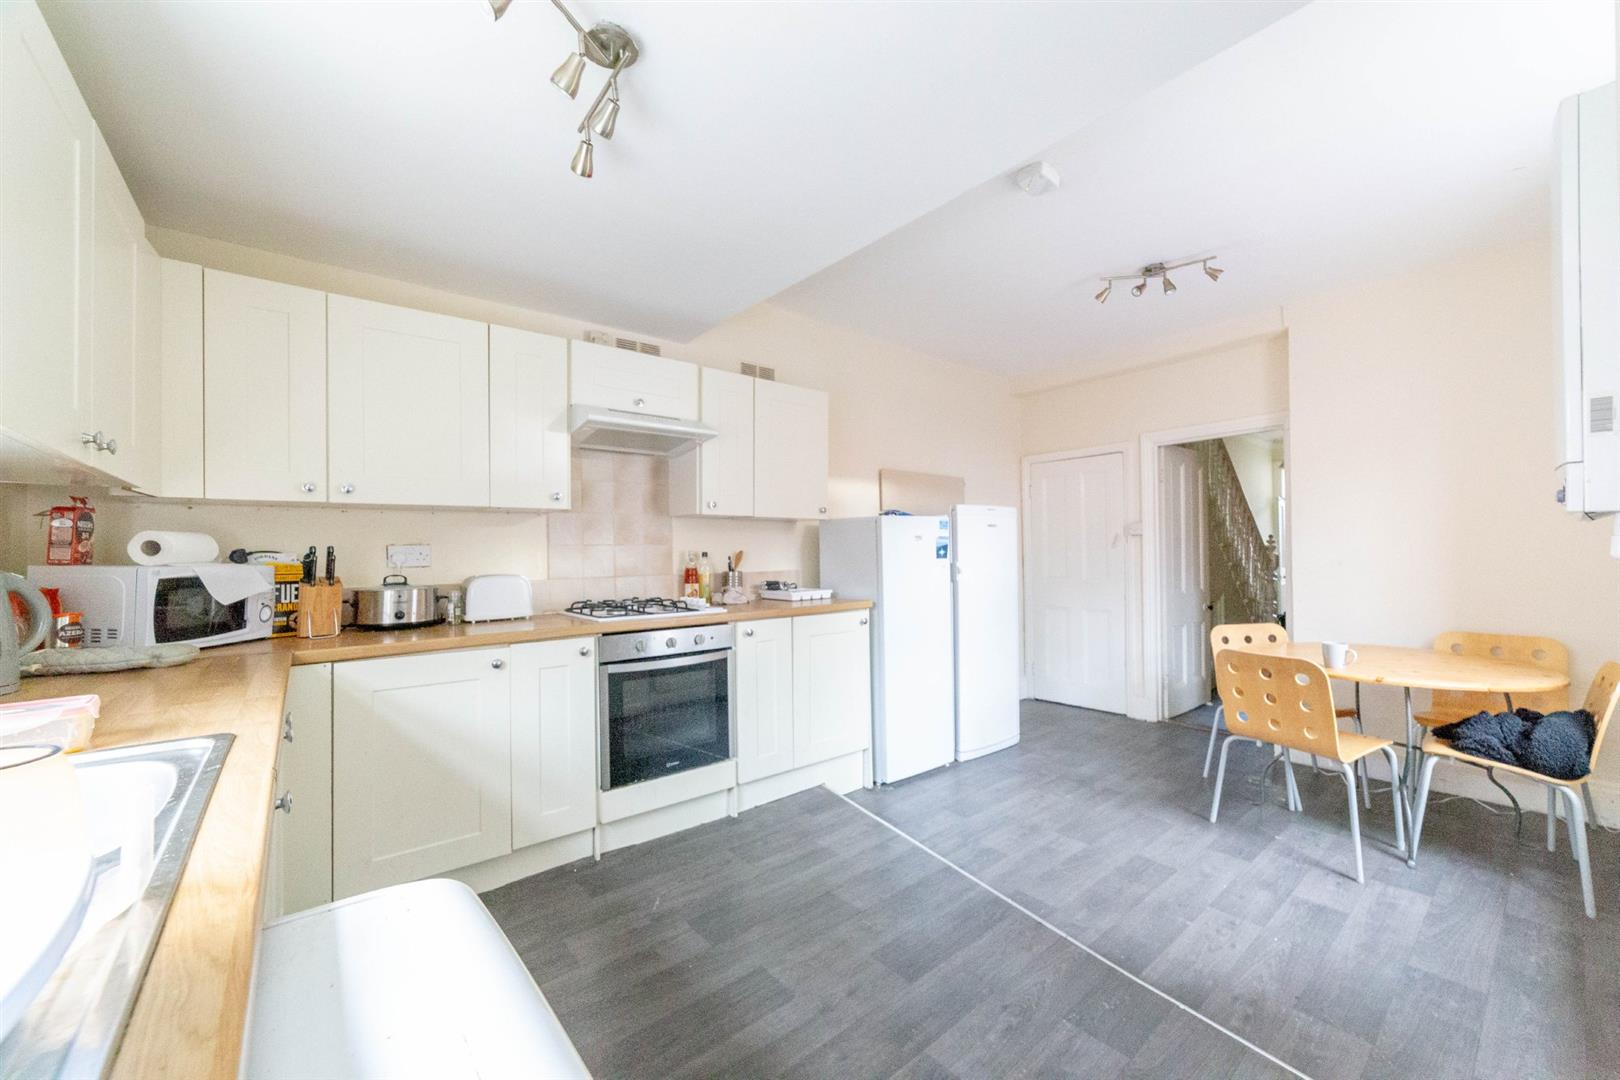 4 bed terraced house to rent in Newcastle Upon Tyne, NE6 5LL - Property Image 1